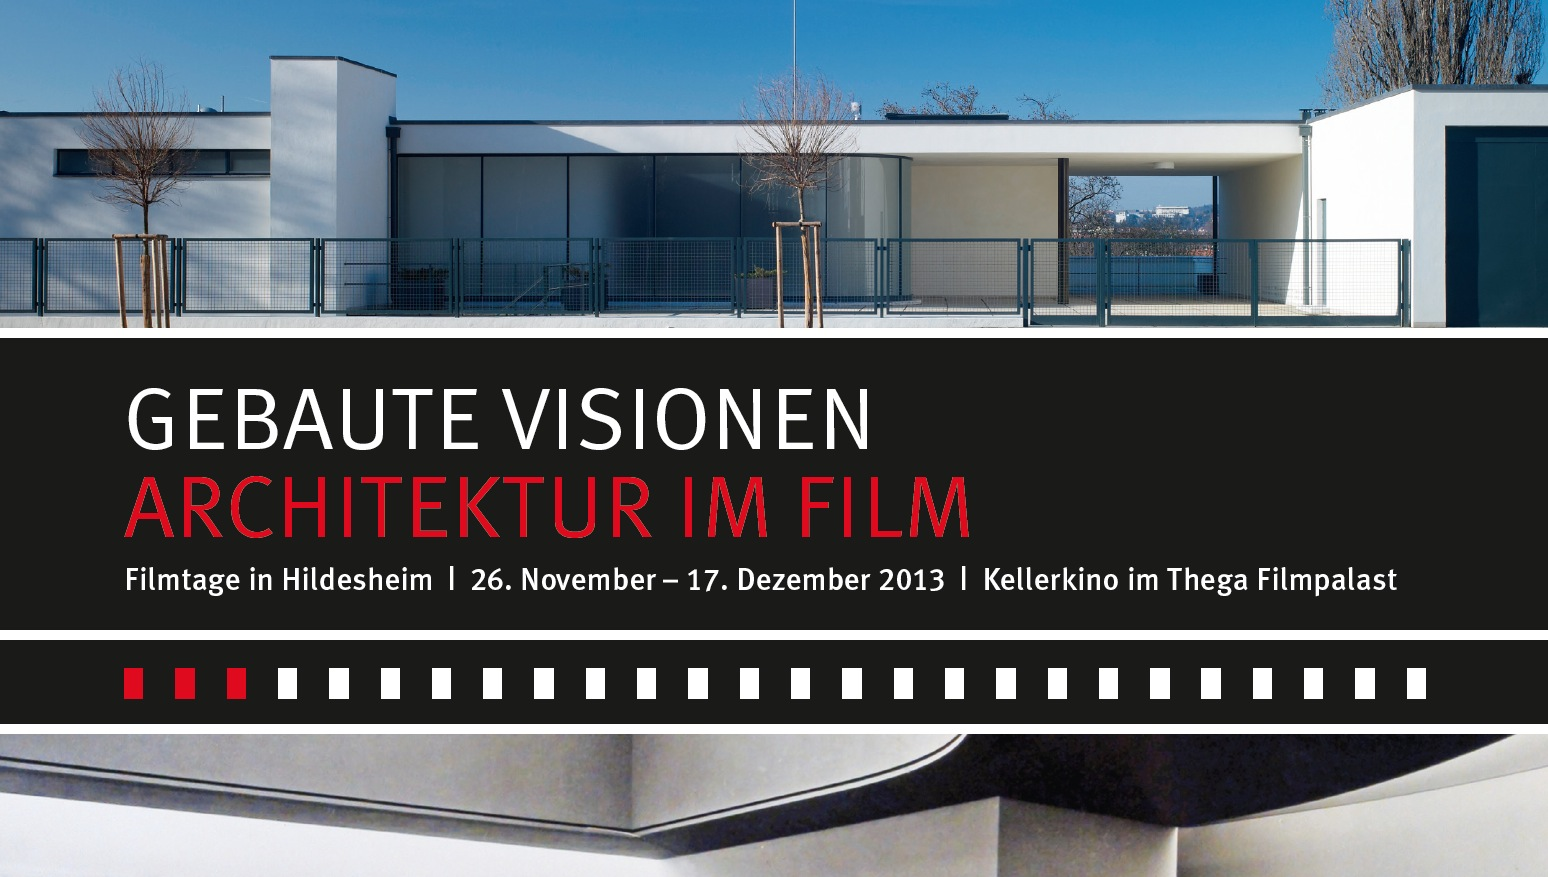 Pool Bauen Hildesheim Architektur Im Film Die Filmtage Hildesheim Architekturvideo De